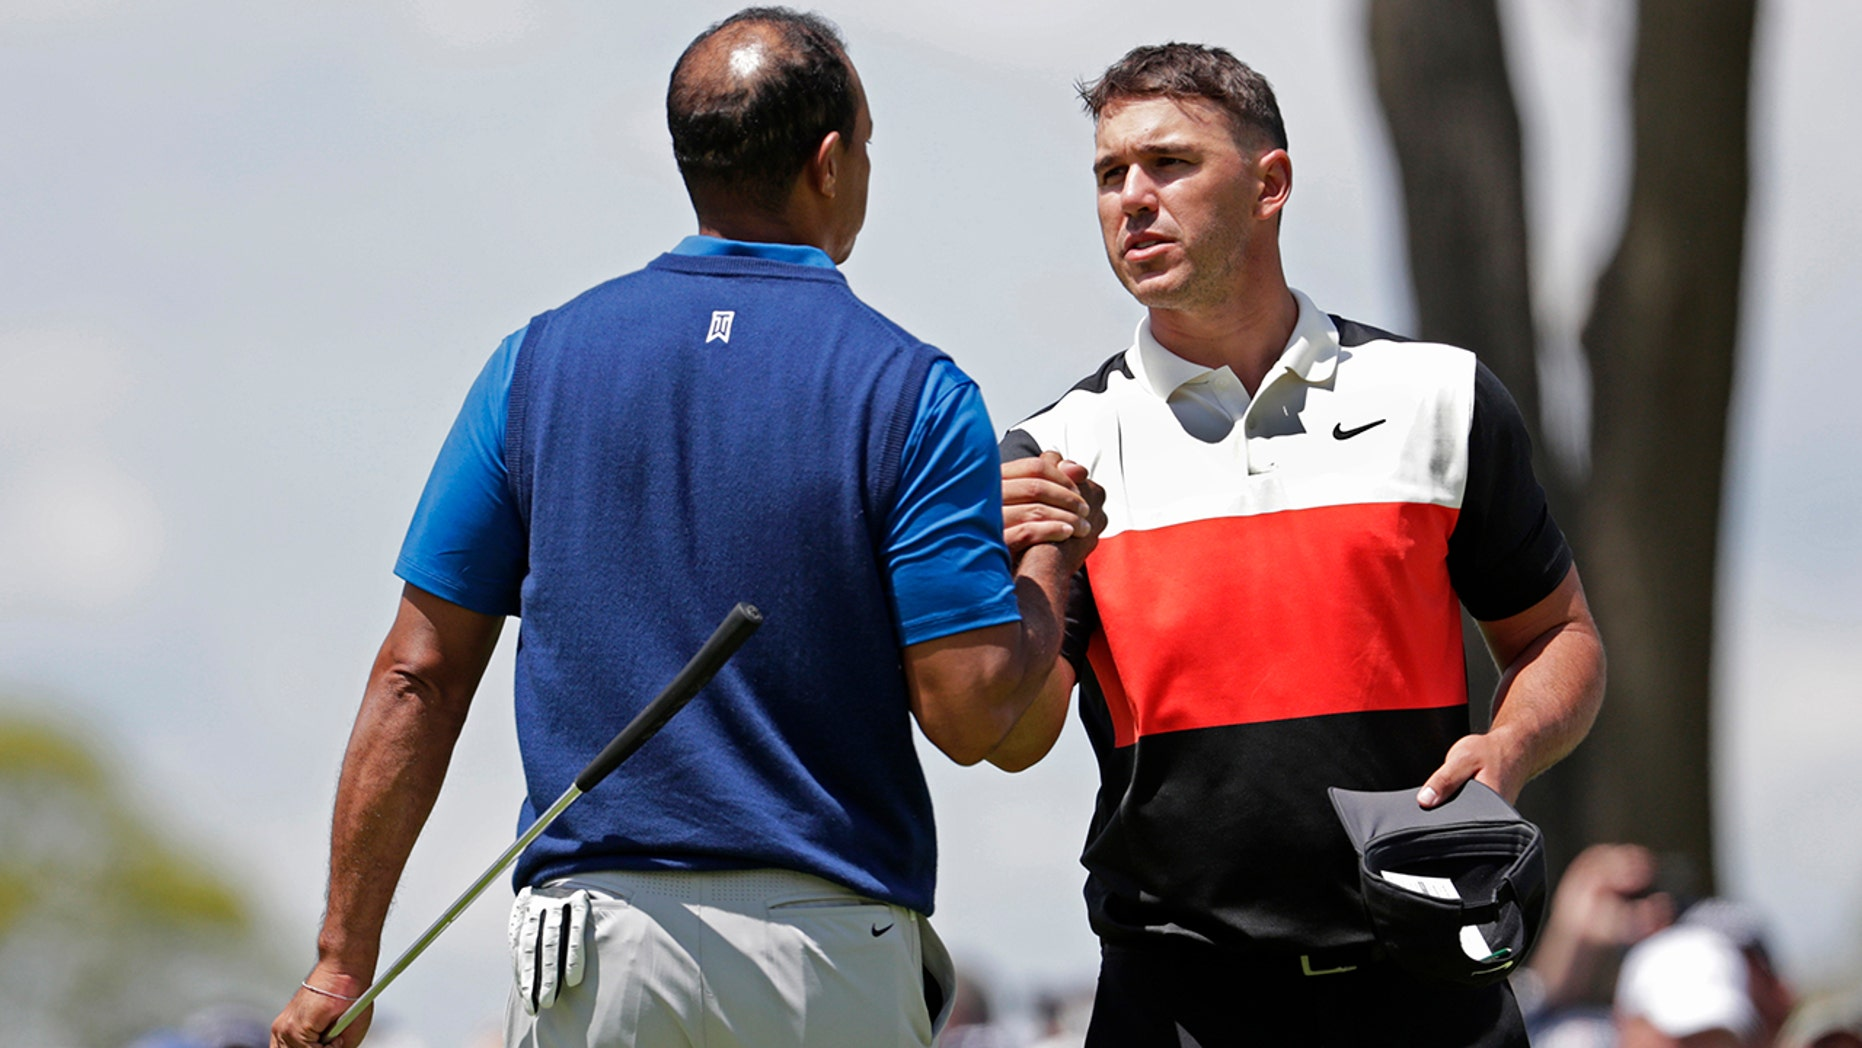 Brooks Koepka, right, shakes hands with Tiger Woods after finishing a initial turn of a PGA Championship golf tournament, Thursday, May 16, 2019, during Bethpage Black in Farmingdale, N.Y. (AP Photo/Julio Cortez)